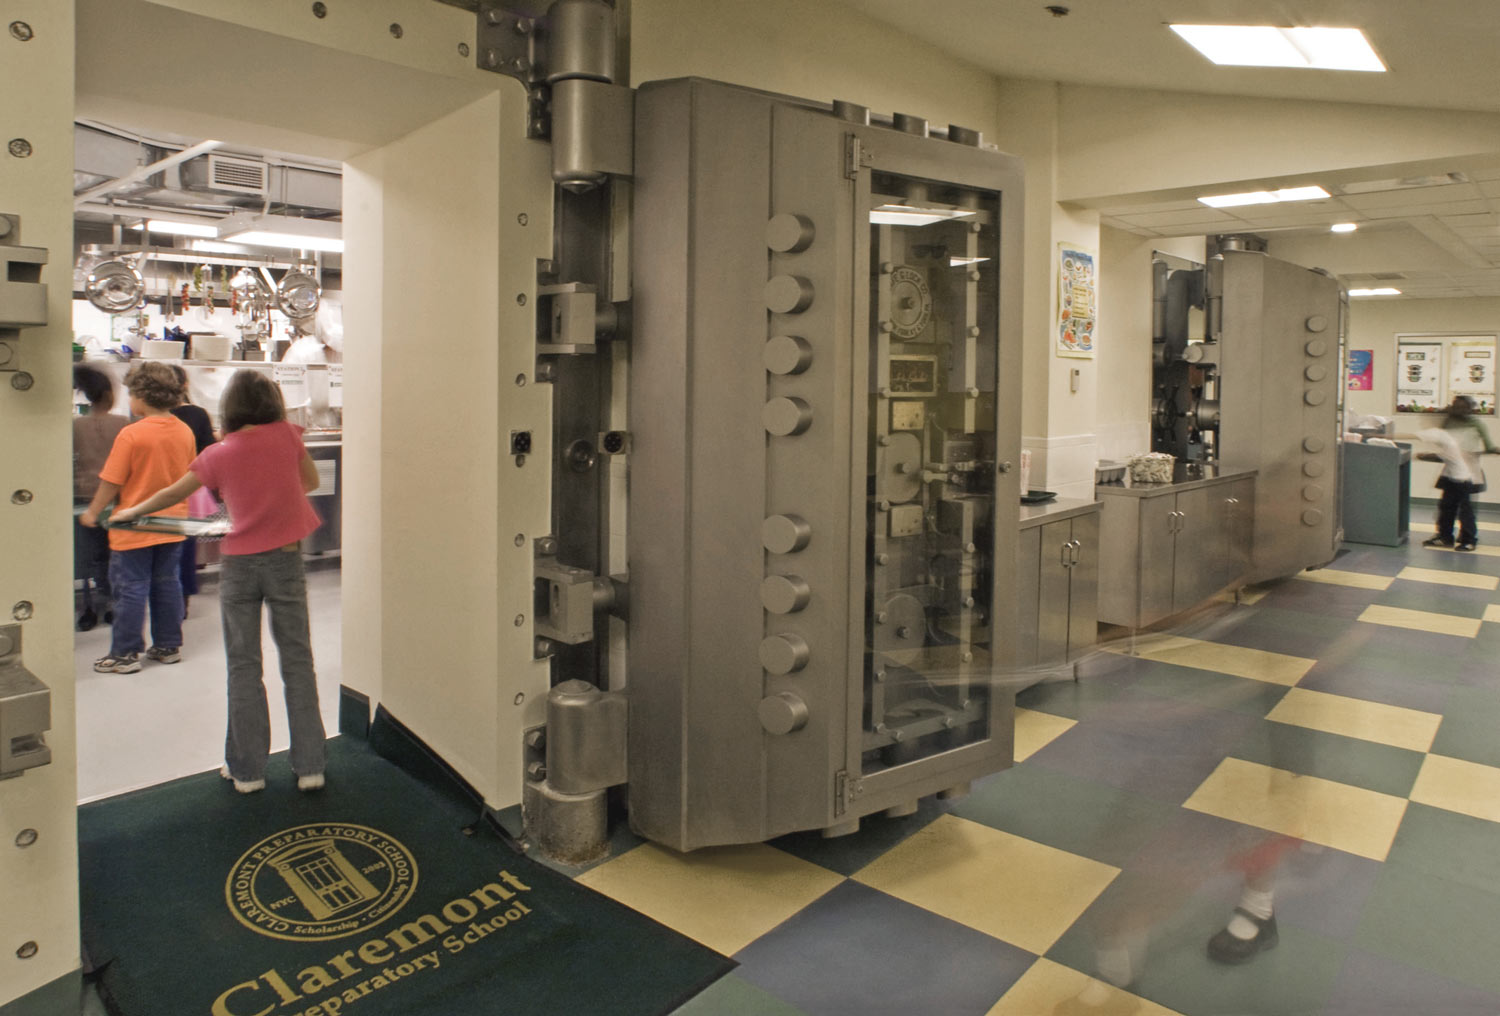 In this restoration and conversion, OCV transformed the bank vault to serve as the schools' cafeteria.